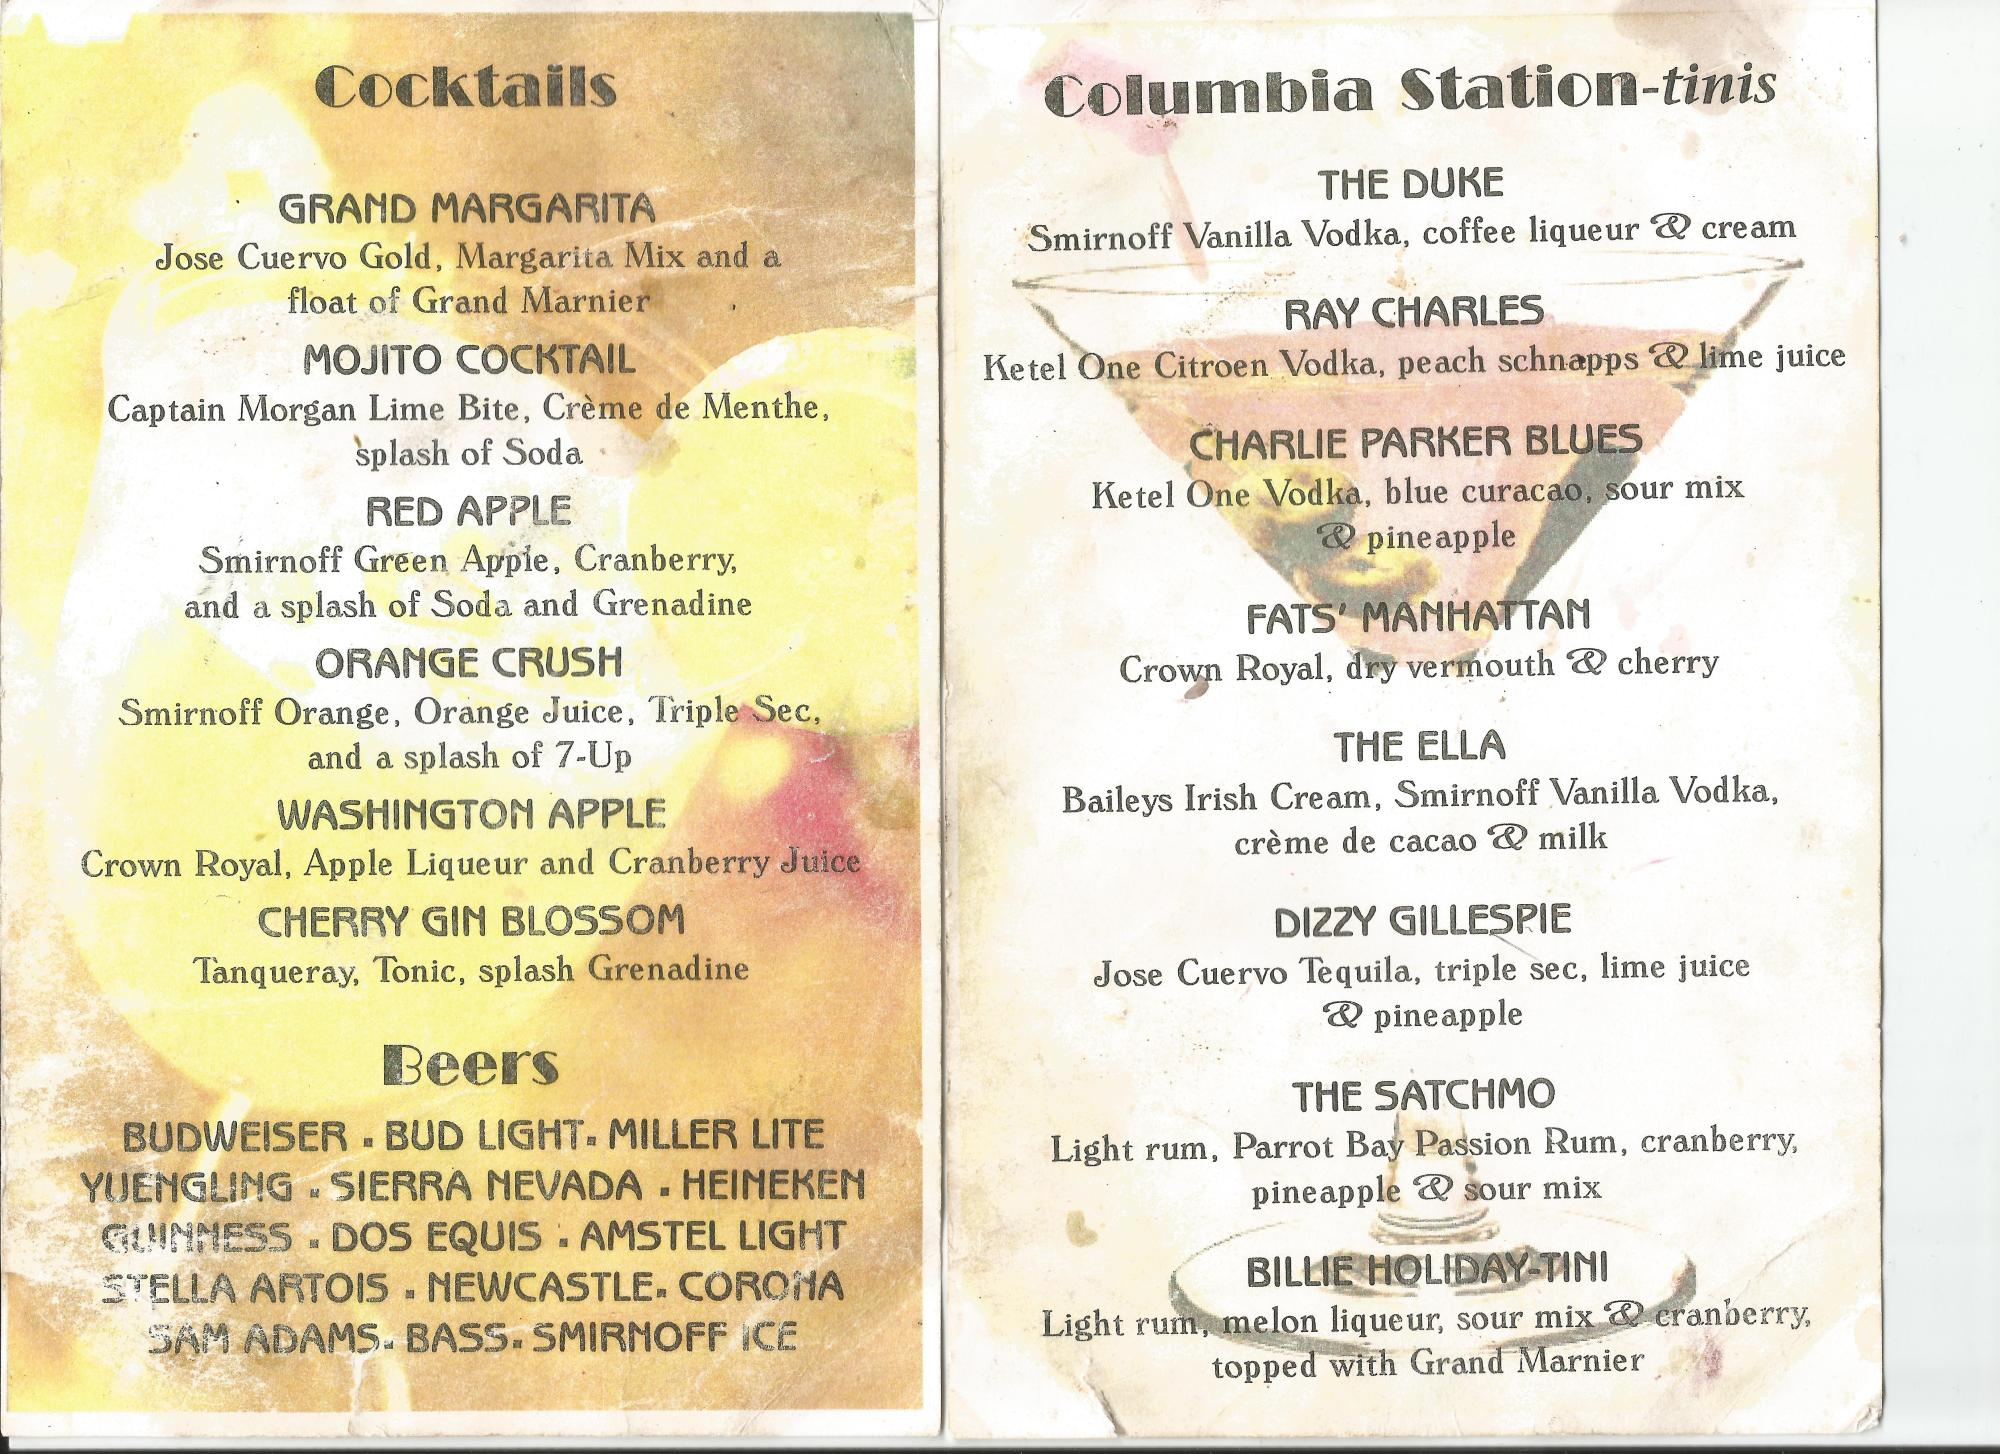 columbia_station_cocktails_jpeg.jpg